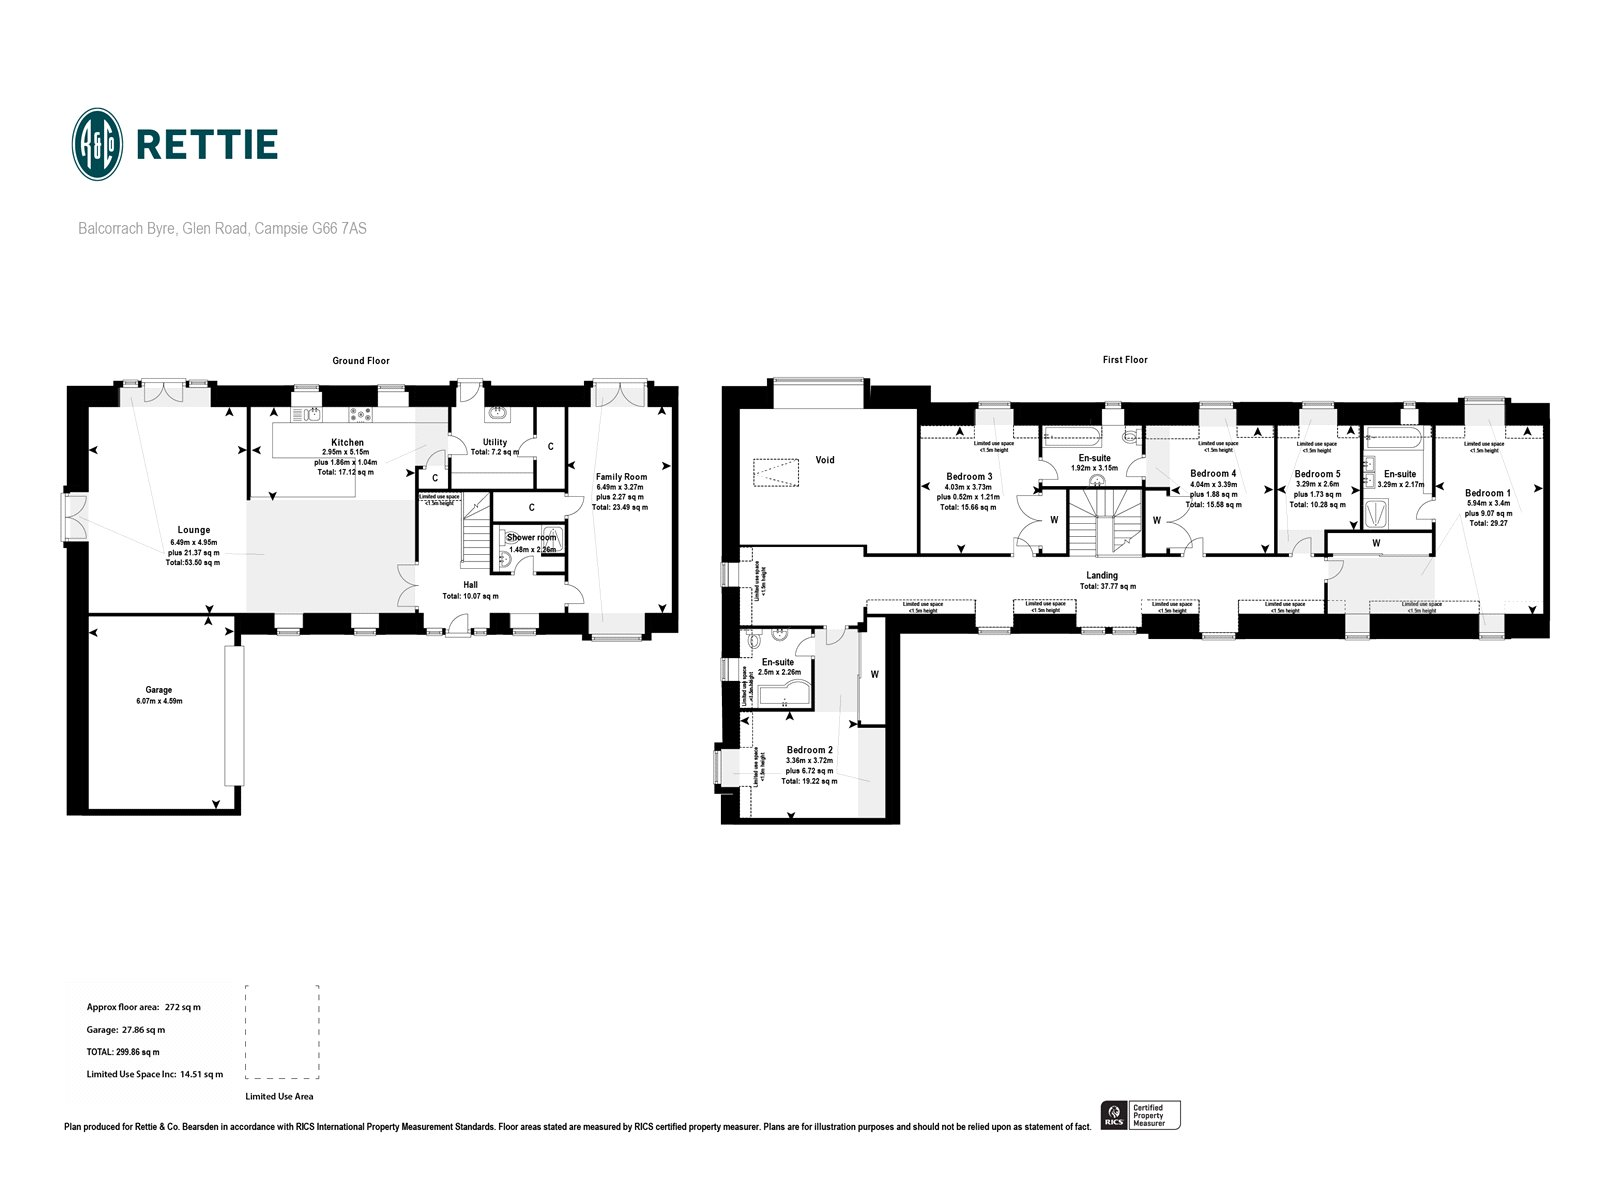 Floorplans for Glen Road, Campsie Glen, G66